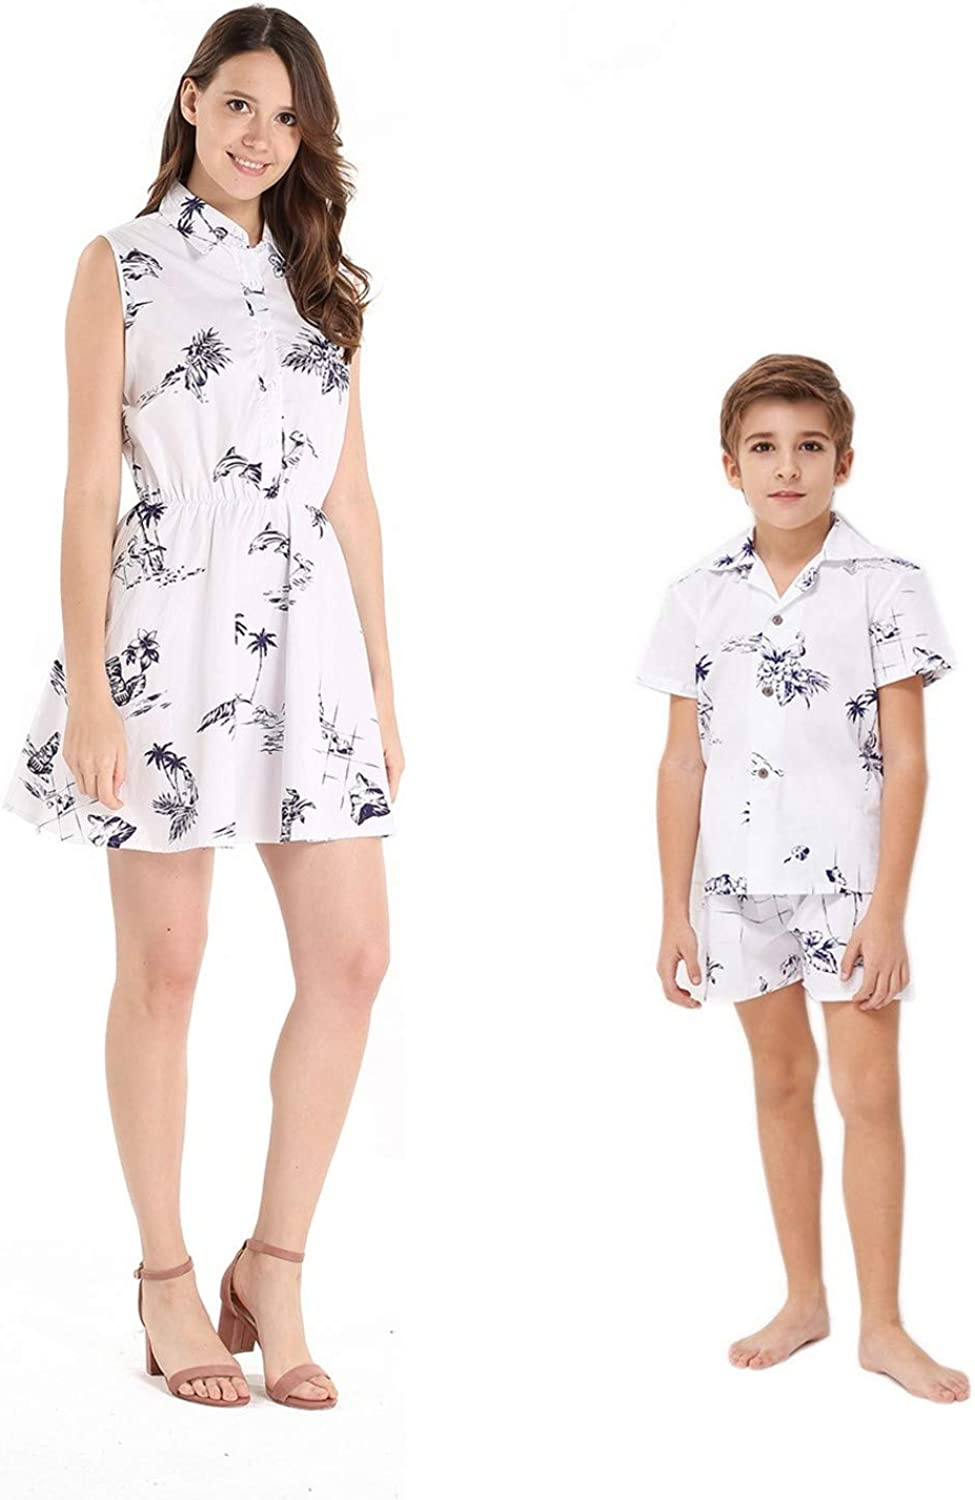 sale Matching Inventory cleanup selling sale Mother Son Hawaiian Luau Outfit Shirt Boy Women S Dress